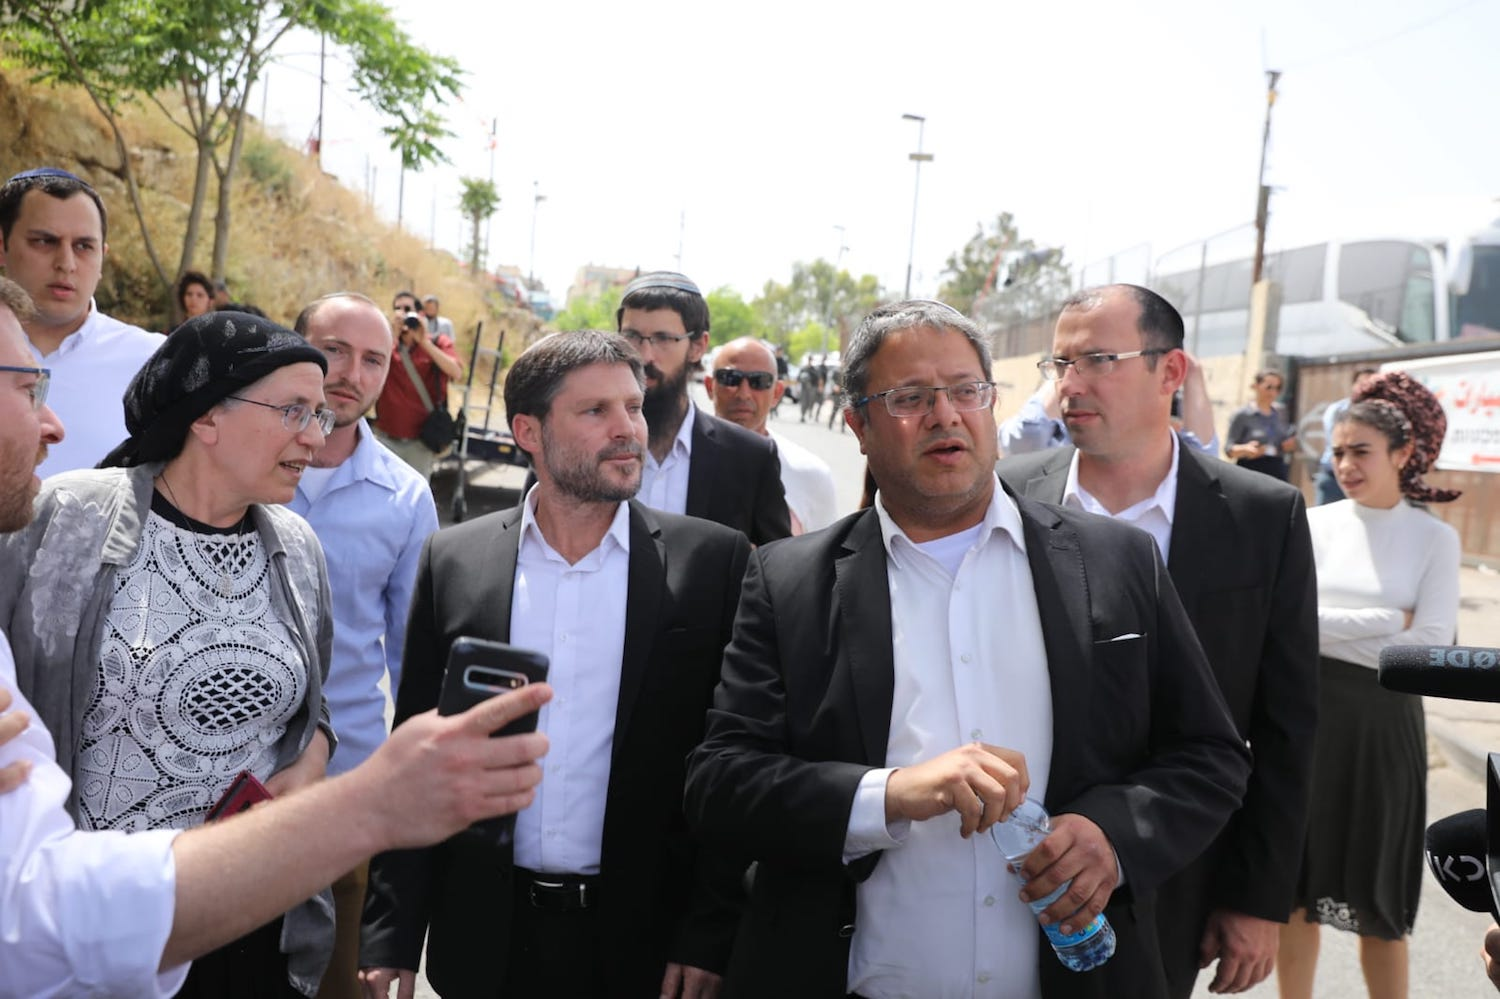 MKs Bezalel Smotrich and Itamar Ben Gvir from the far-right Religious Zionist Party visit the East Jerusalem neighborhood of Sheikh Jarrah to show support for settlers trying to evict Palestinians there, May 10, 2021 (Olivier Fitoussi/Flash90)